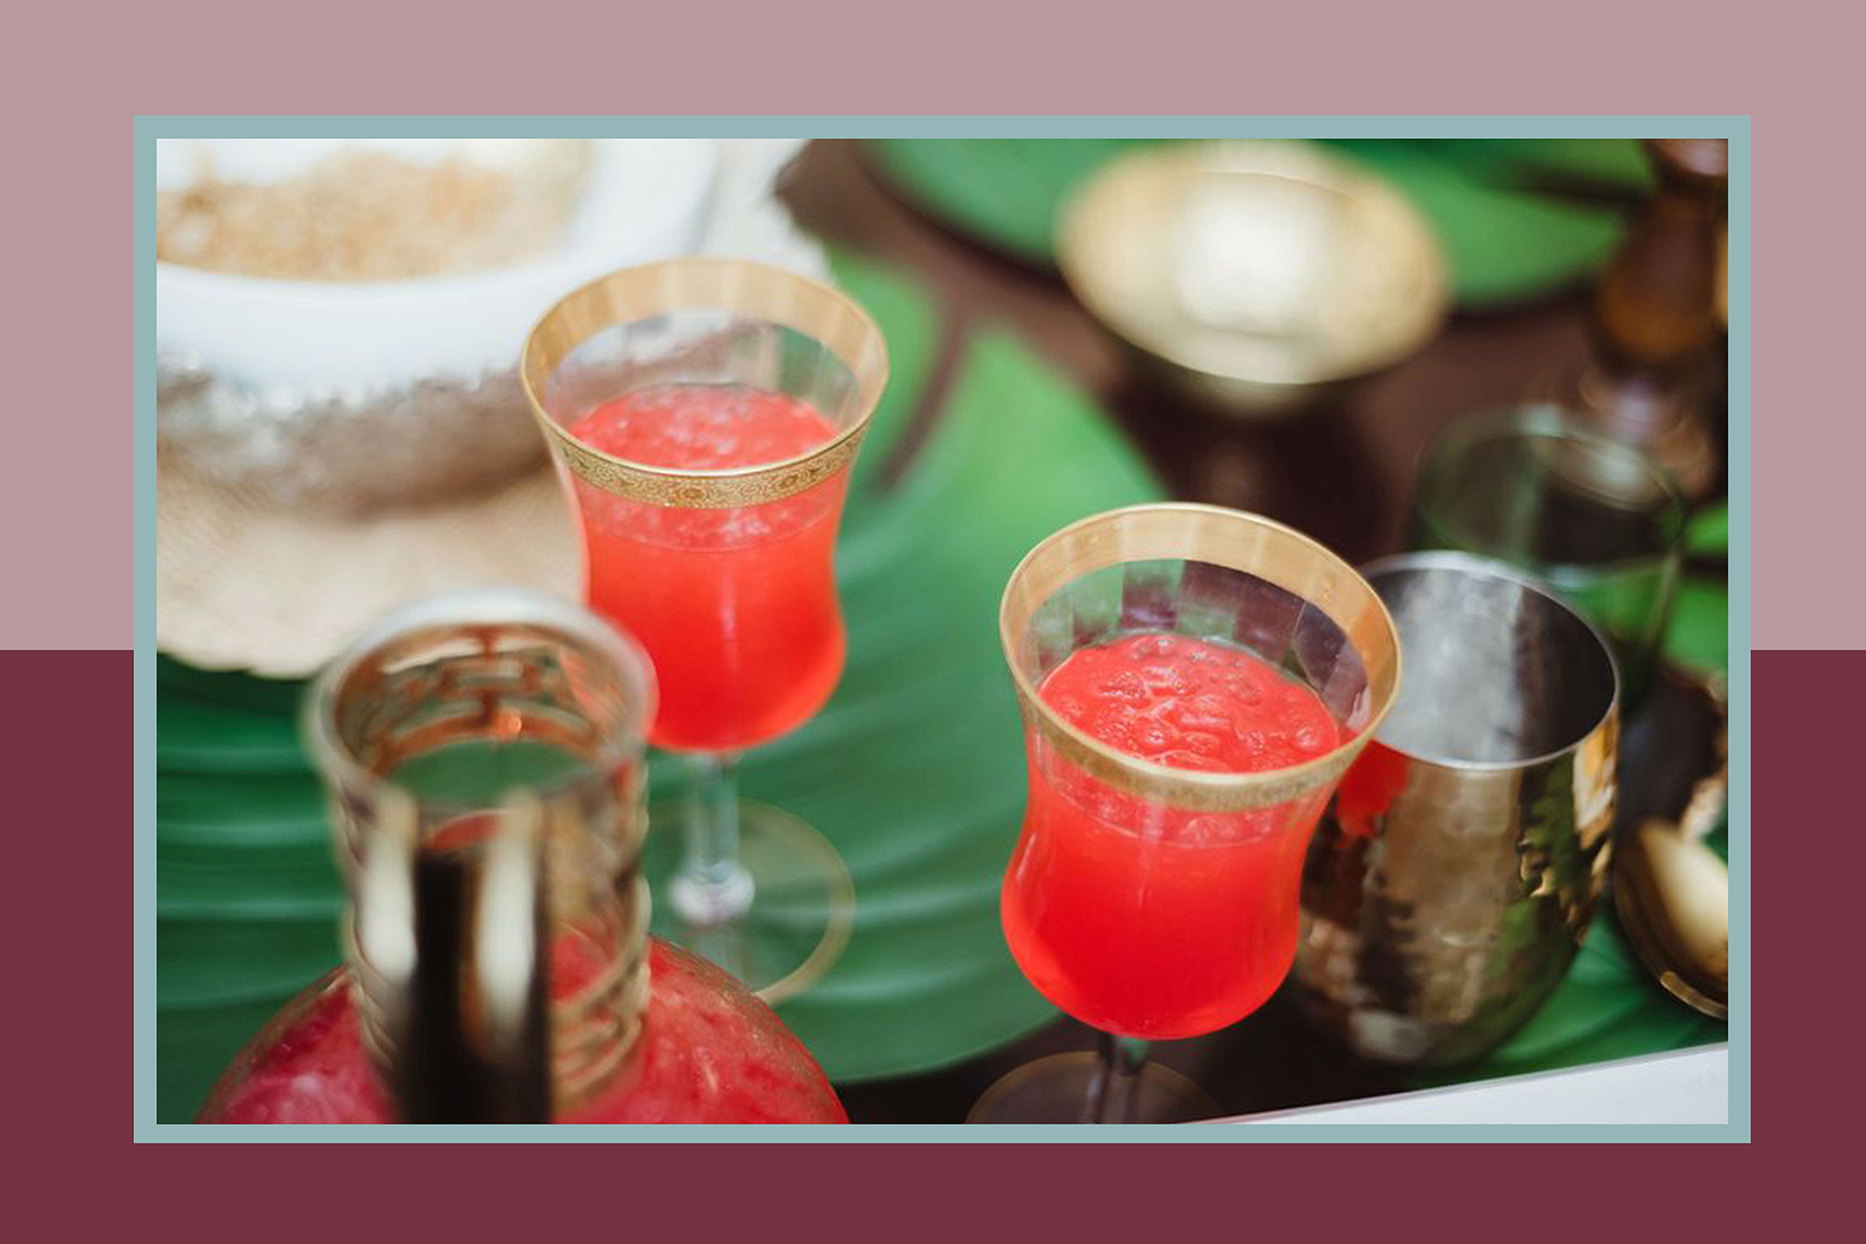 Traditional Juneteenth red drink on table setting